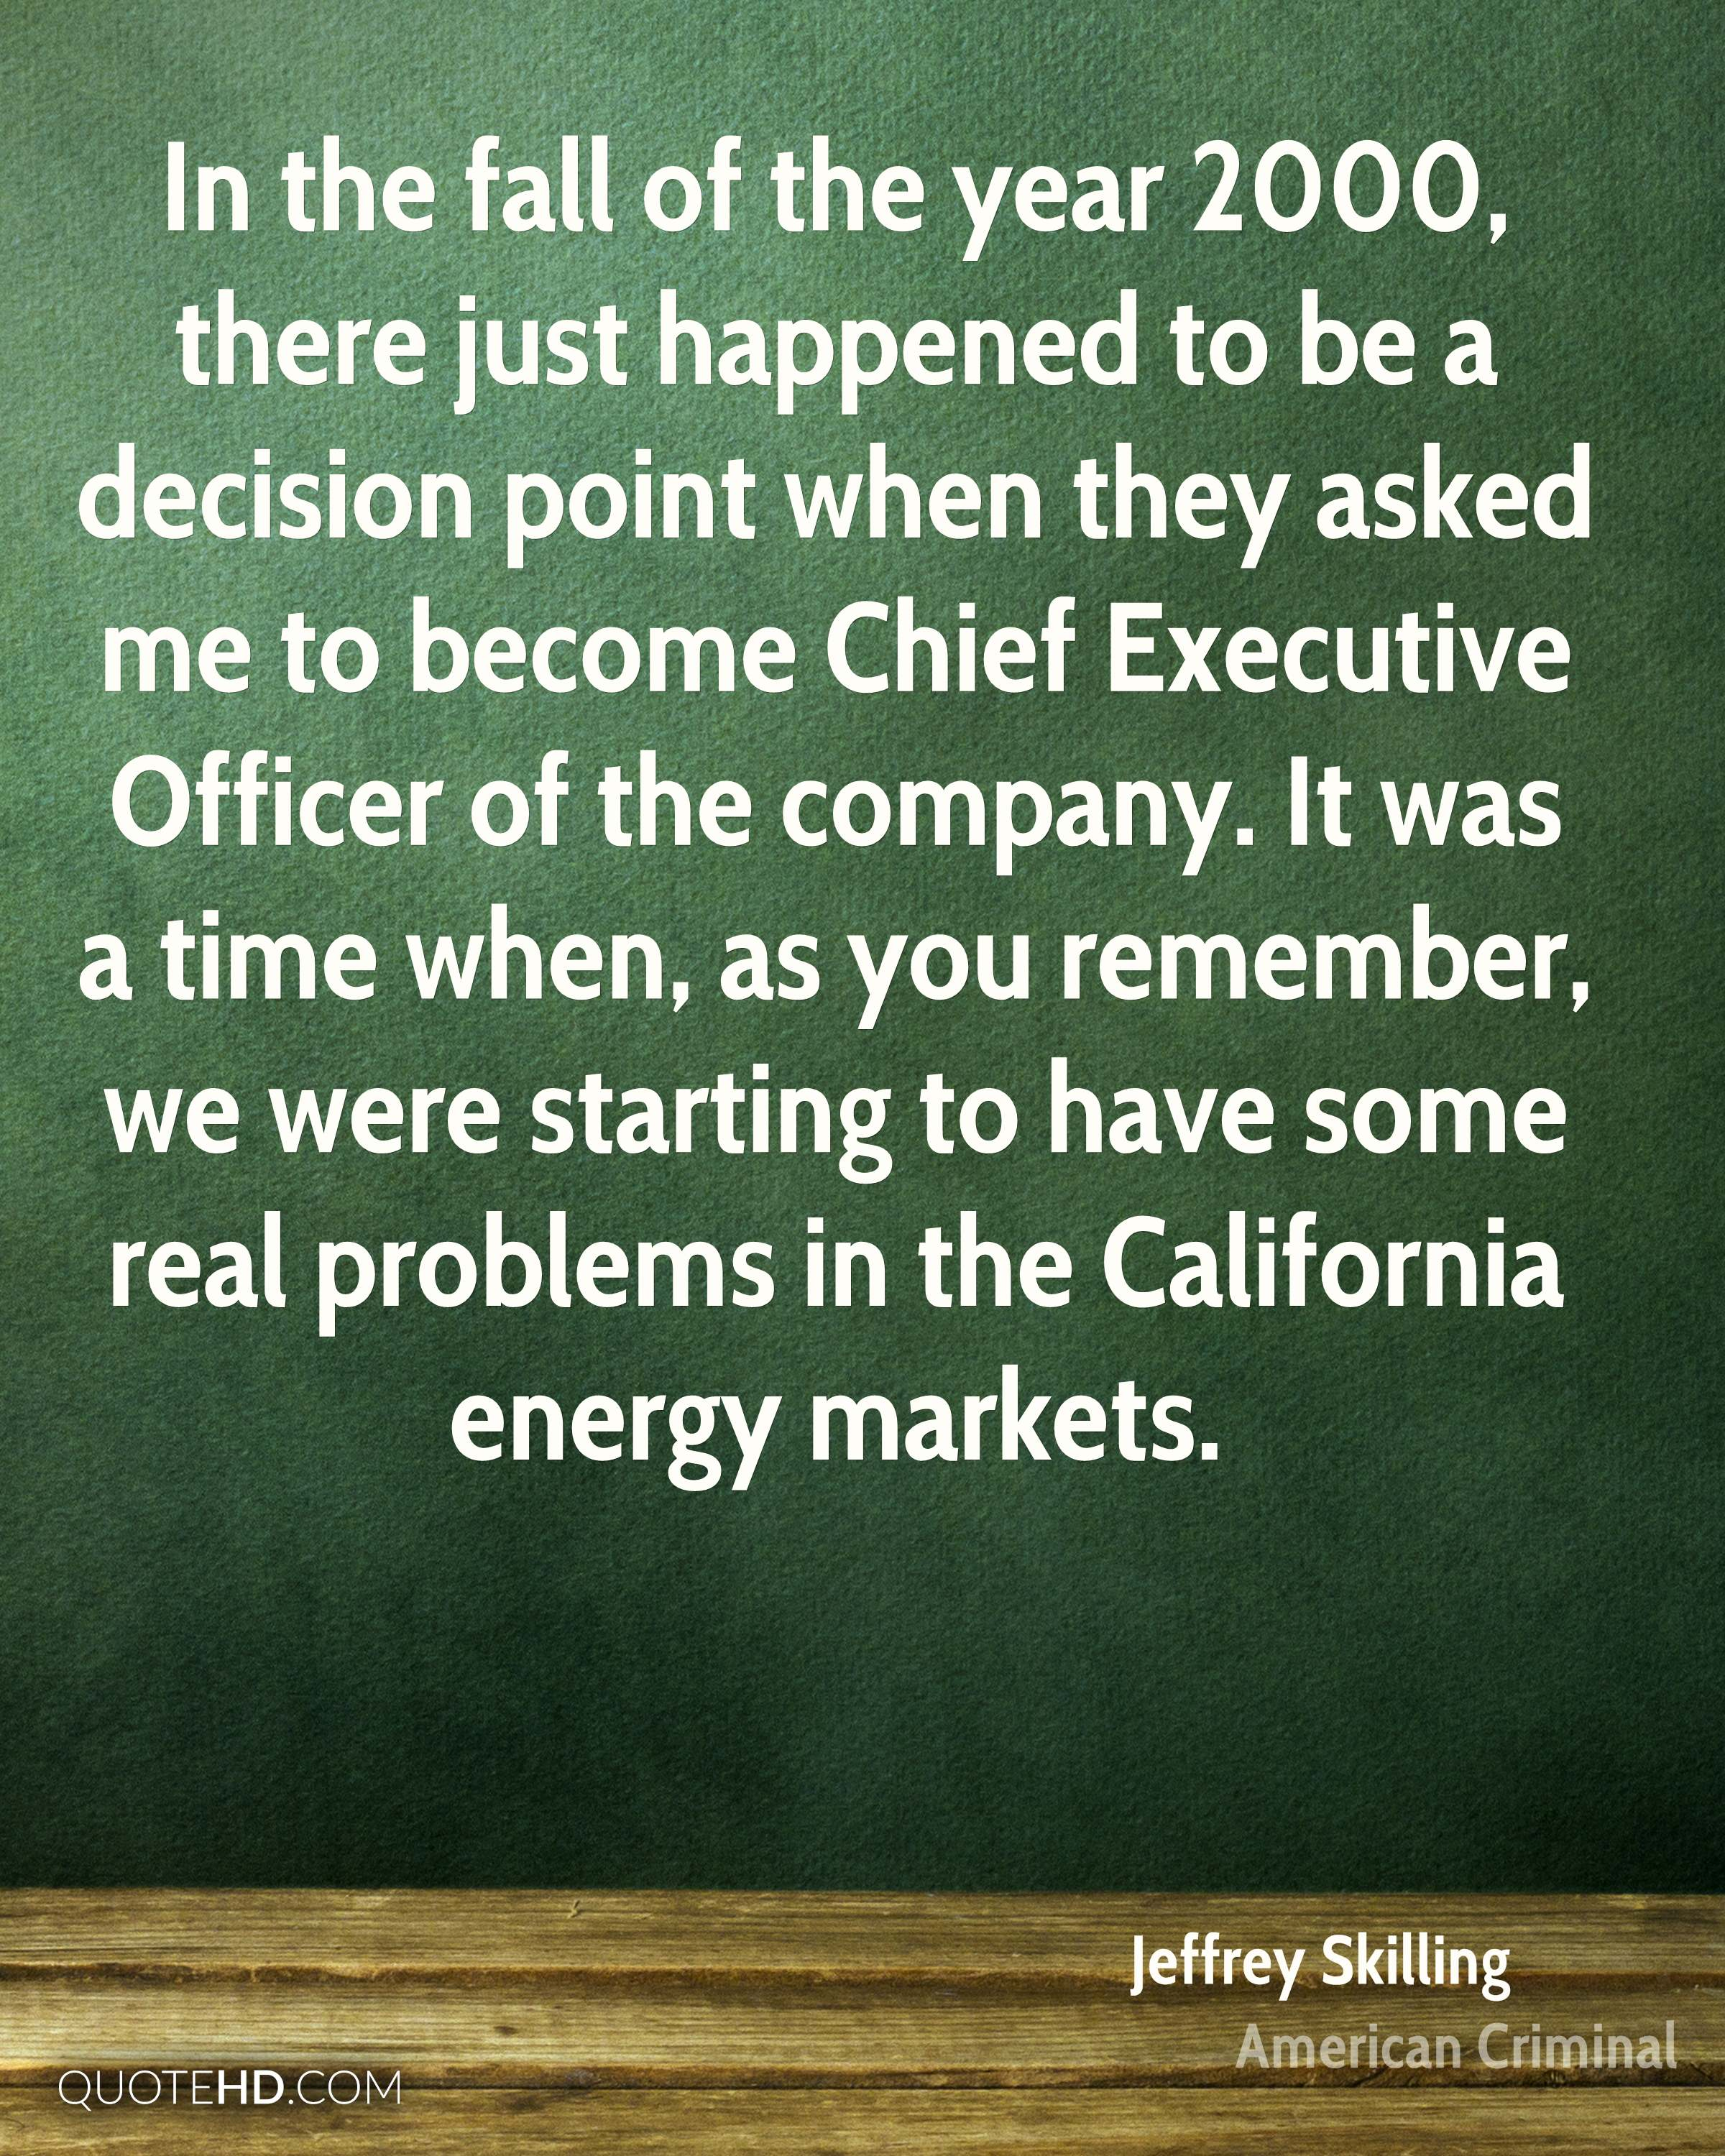 In the fall of the year 2000, there just happened to be a decision point when they asked me to become Chief Executive Officer of the company. It was a time when, as you remember, we were starting to have some real problems in the California energy markets.